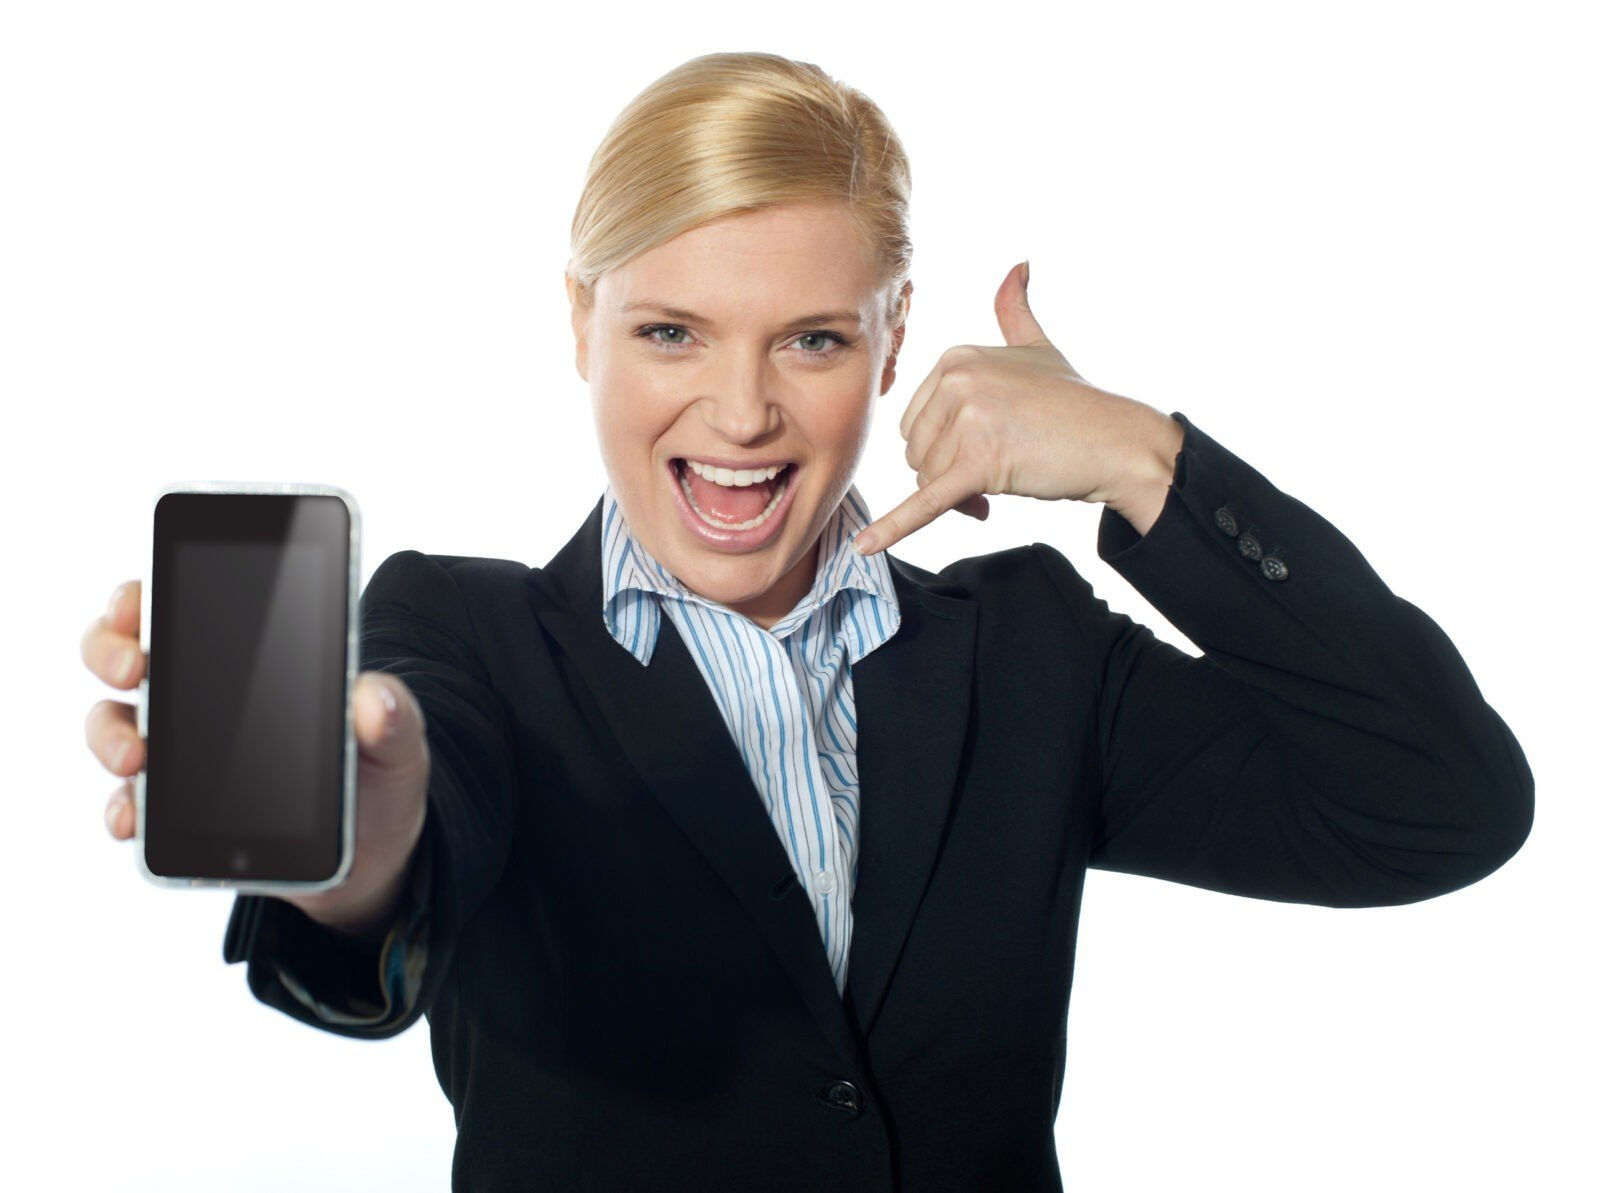 saleswoman showing off iphone